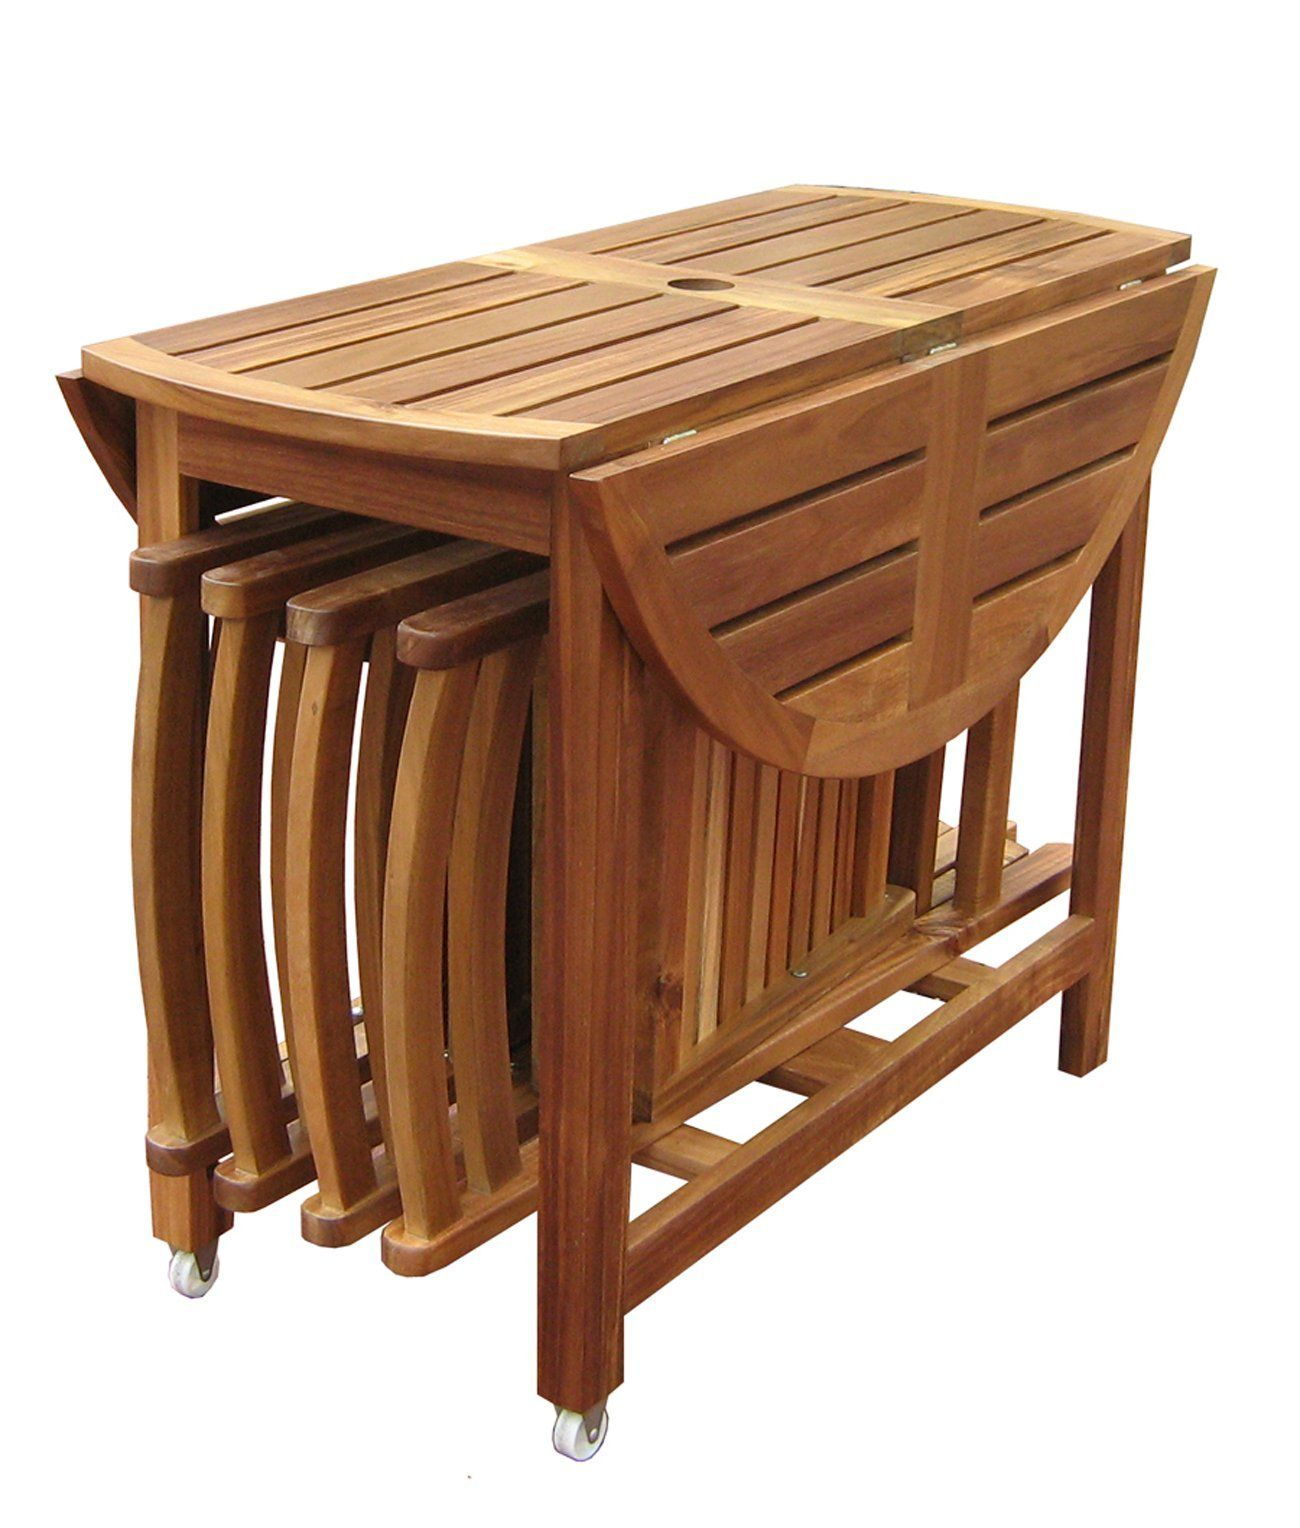 Acacia Folding Table And Chair Set The Sides Of The Acacia Table